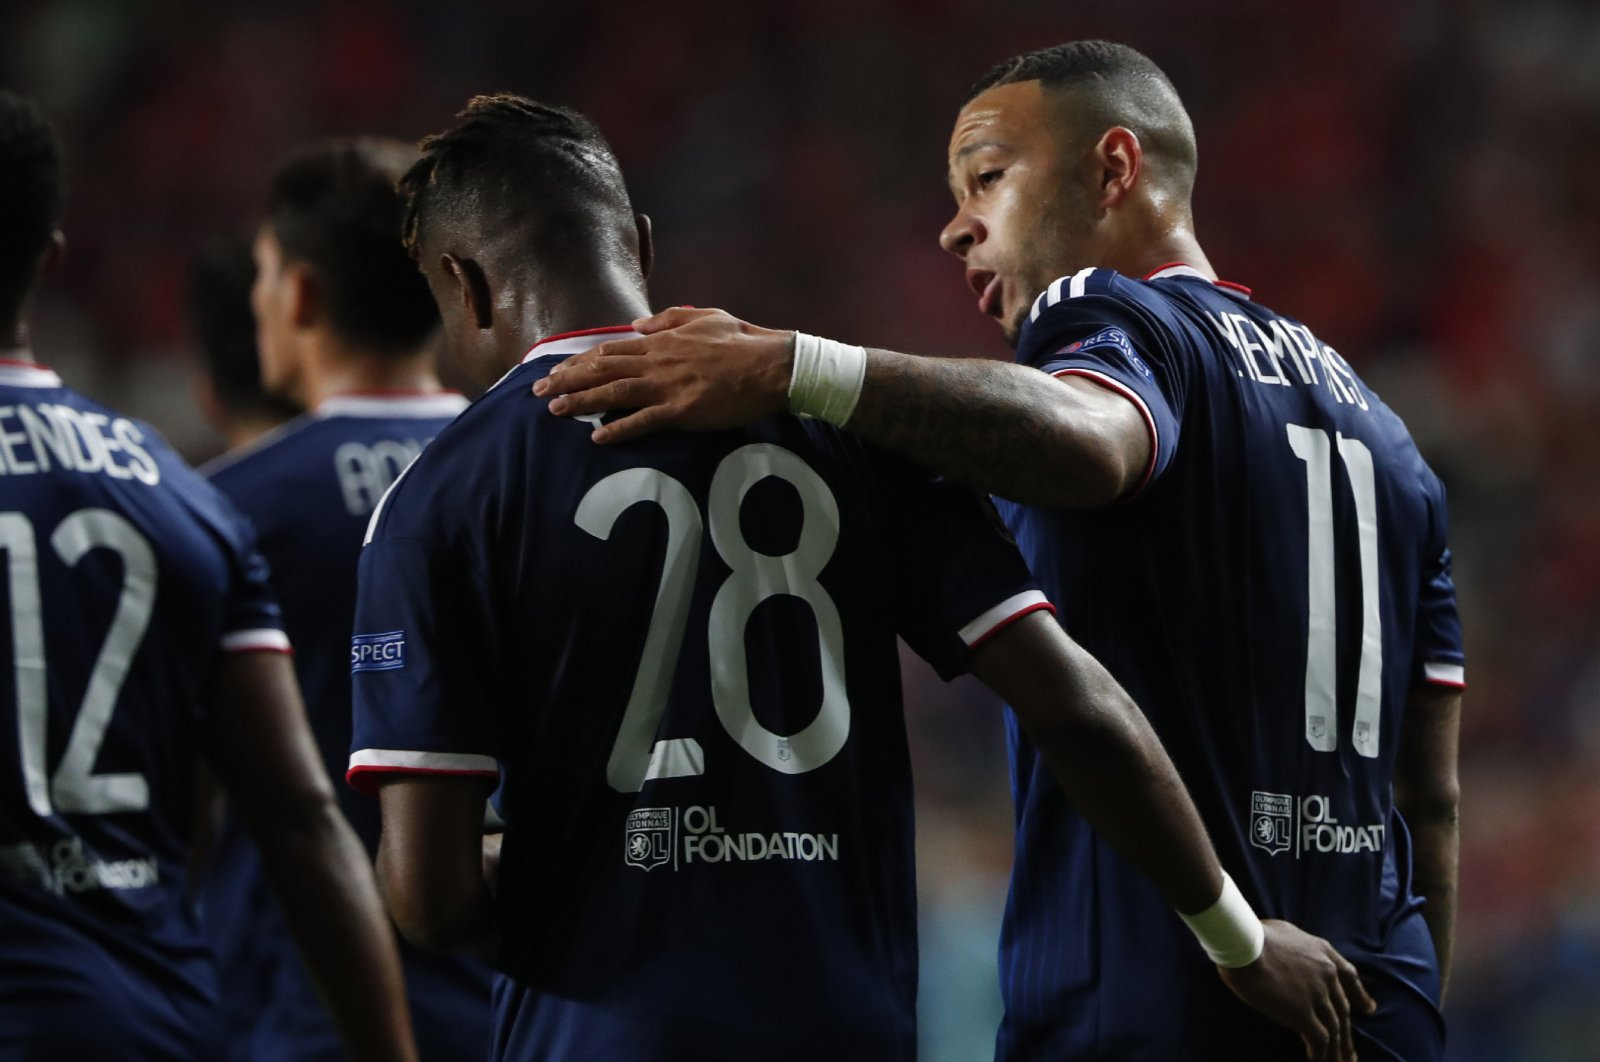 Lyon players celebrate a goal during a Champions League match against Benfica in Lisbon, Portugal, Oct. 23, 2019. (AP Photo)